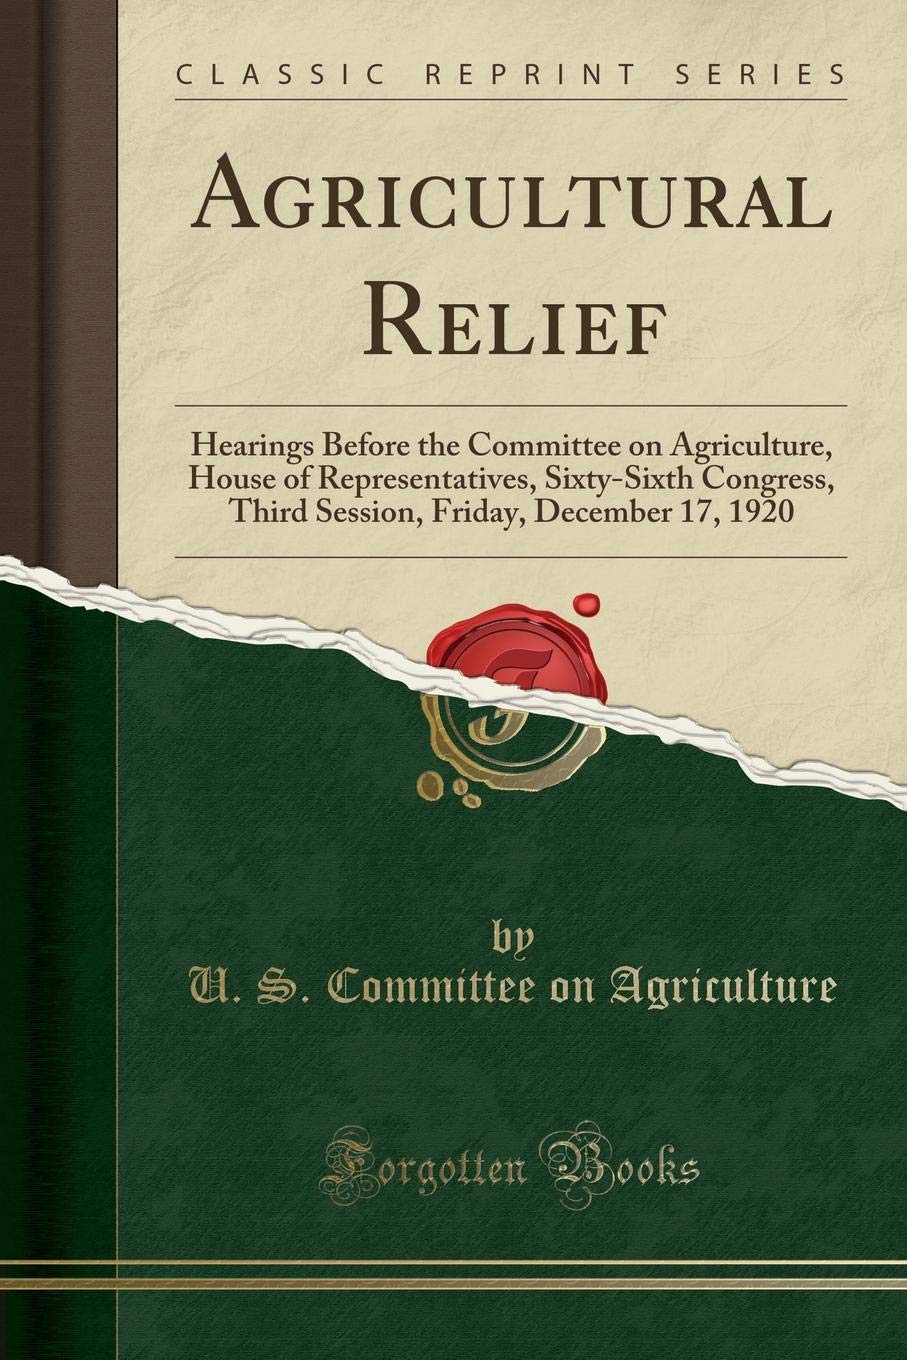 Agricultural Relief: Hearings Before the Committee on Agriculture, House of Representatives, Sixty-Sixth Congress, Third Session, Friday, December 17, 1920 (Classic Reprint) pdf